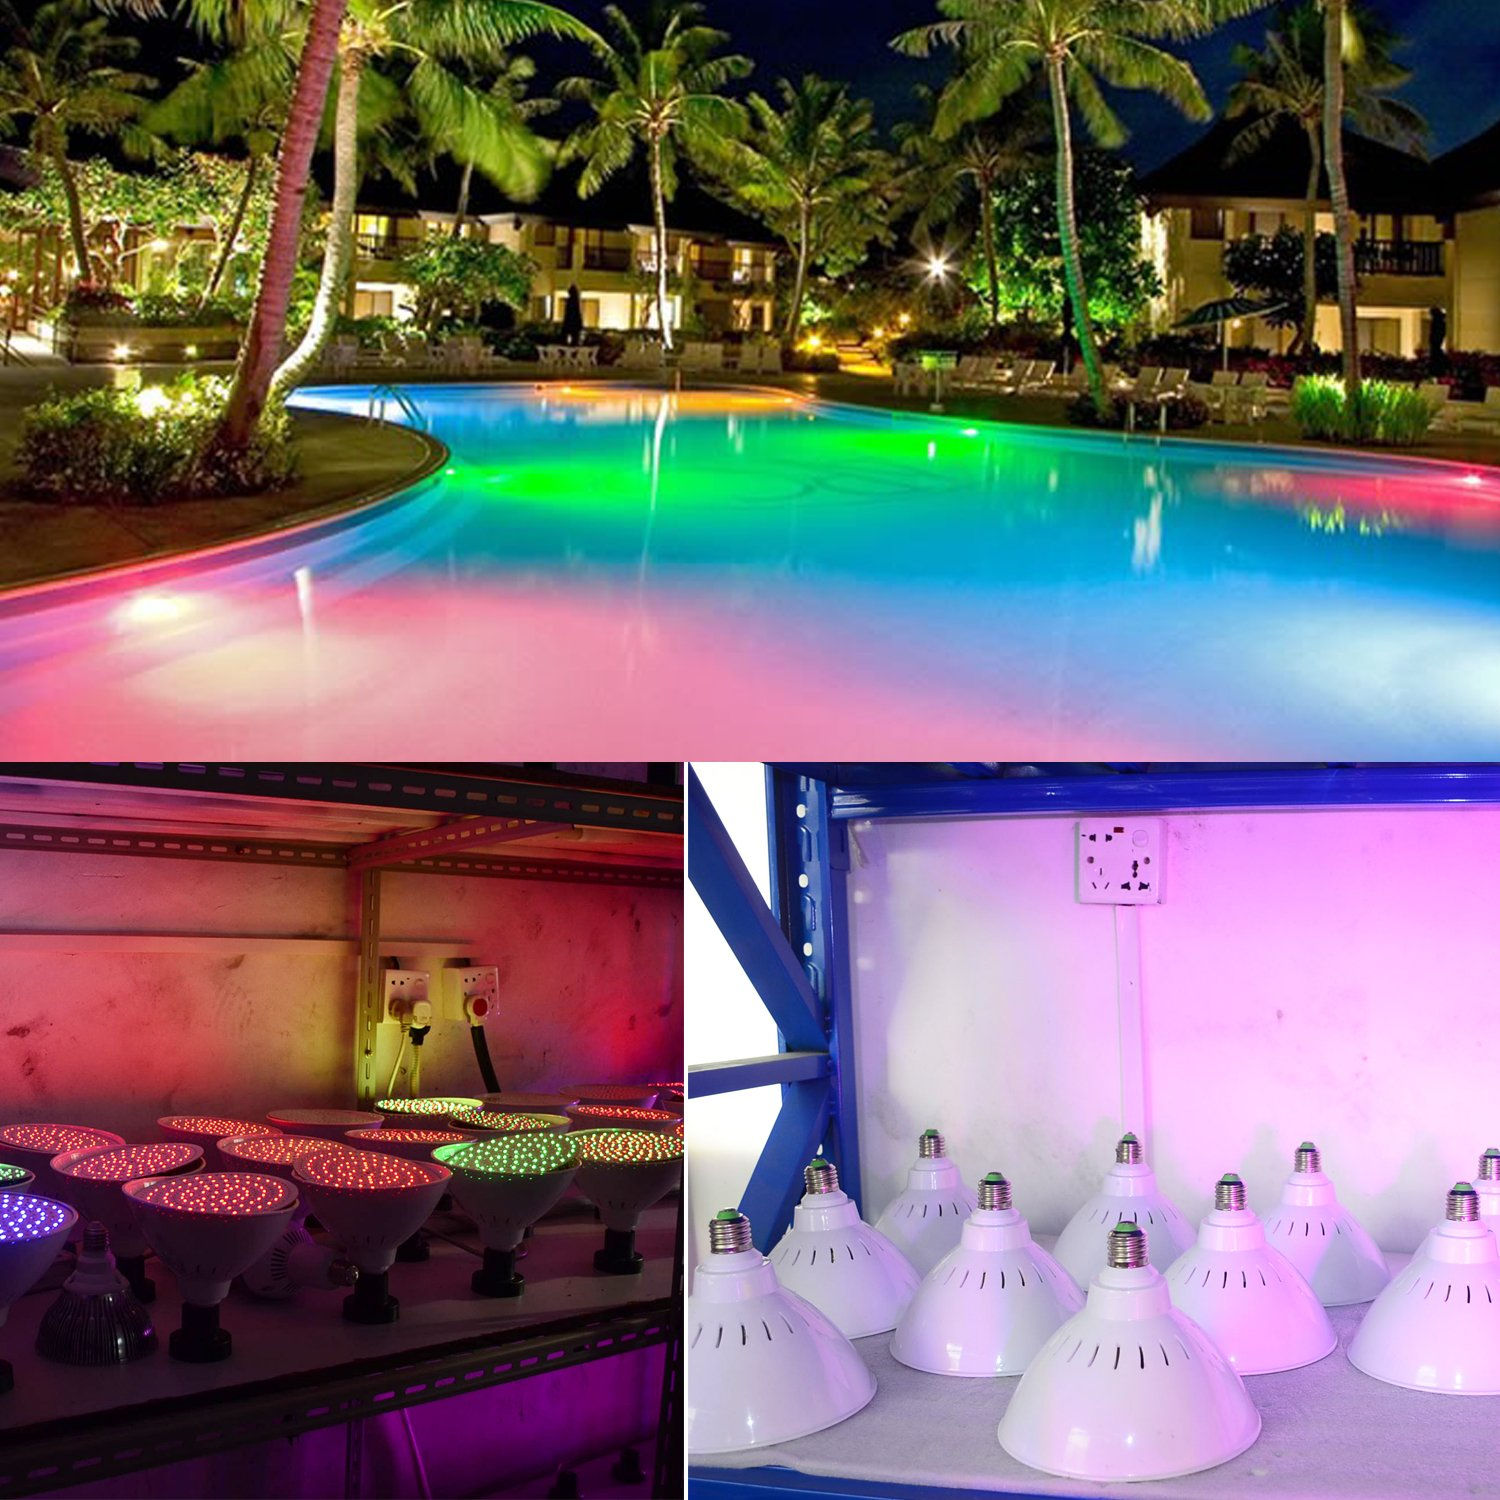 Led Rope Light For Swimming Pool: WYZM 120V 35W Color Changing Swimming Pool Lights LED